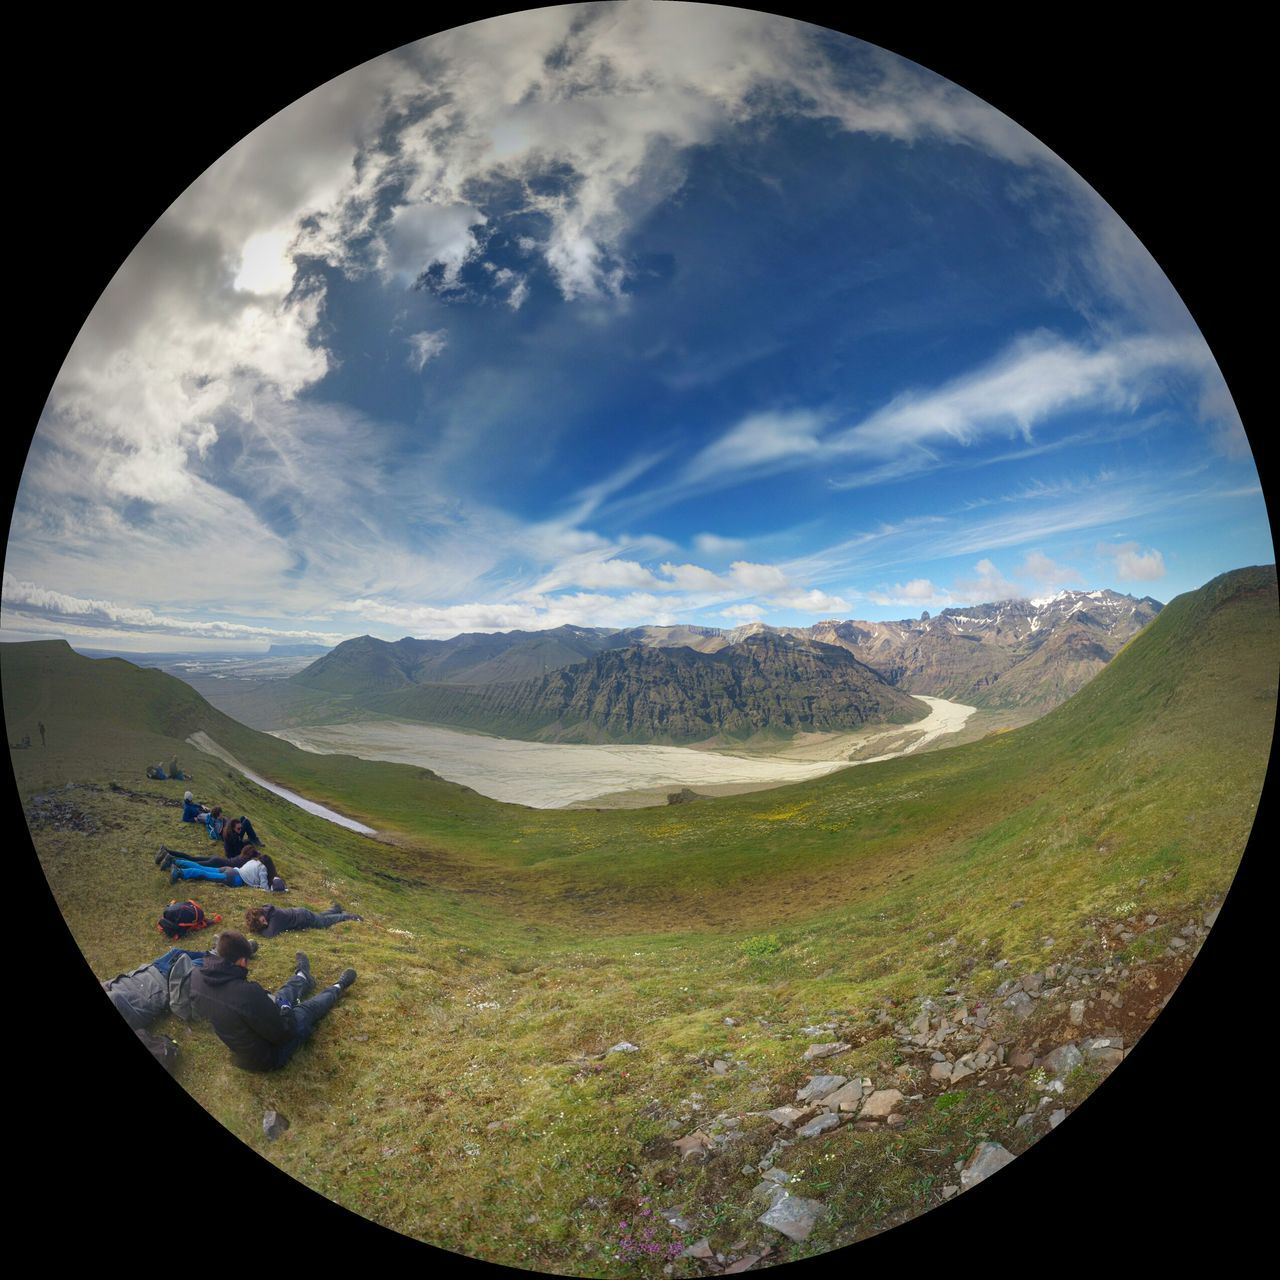 Fish-Eye Effect Of People Relaxing On Green Landscape By River Against Sky